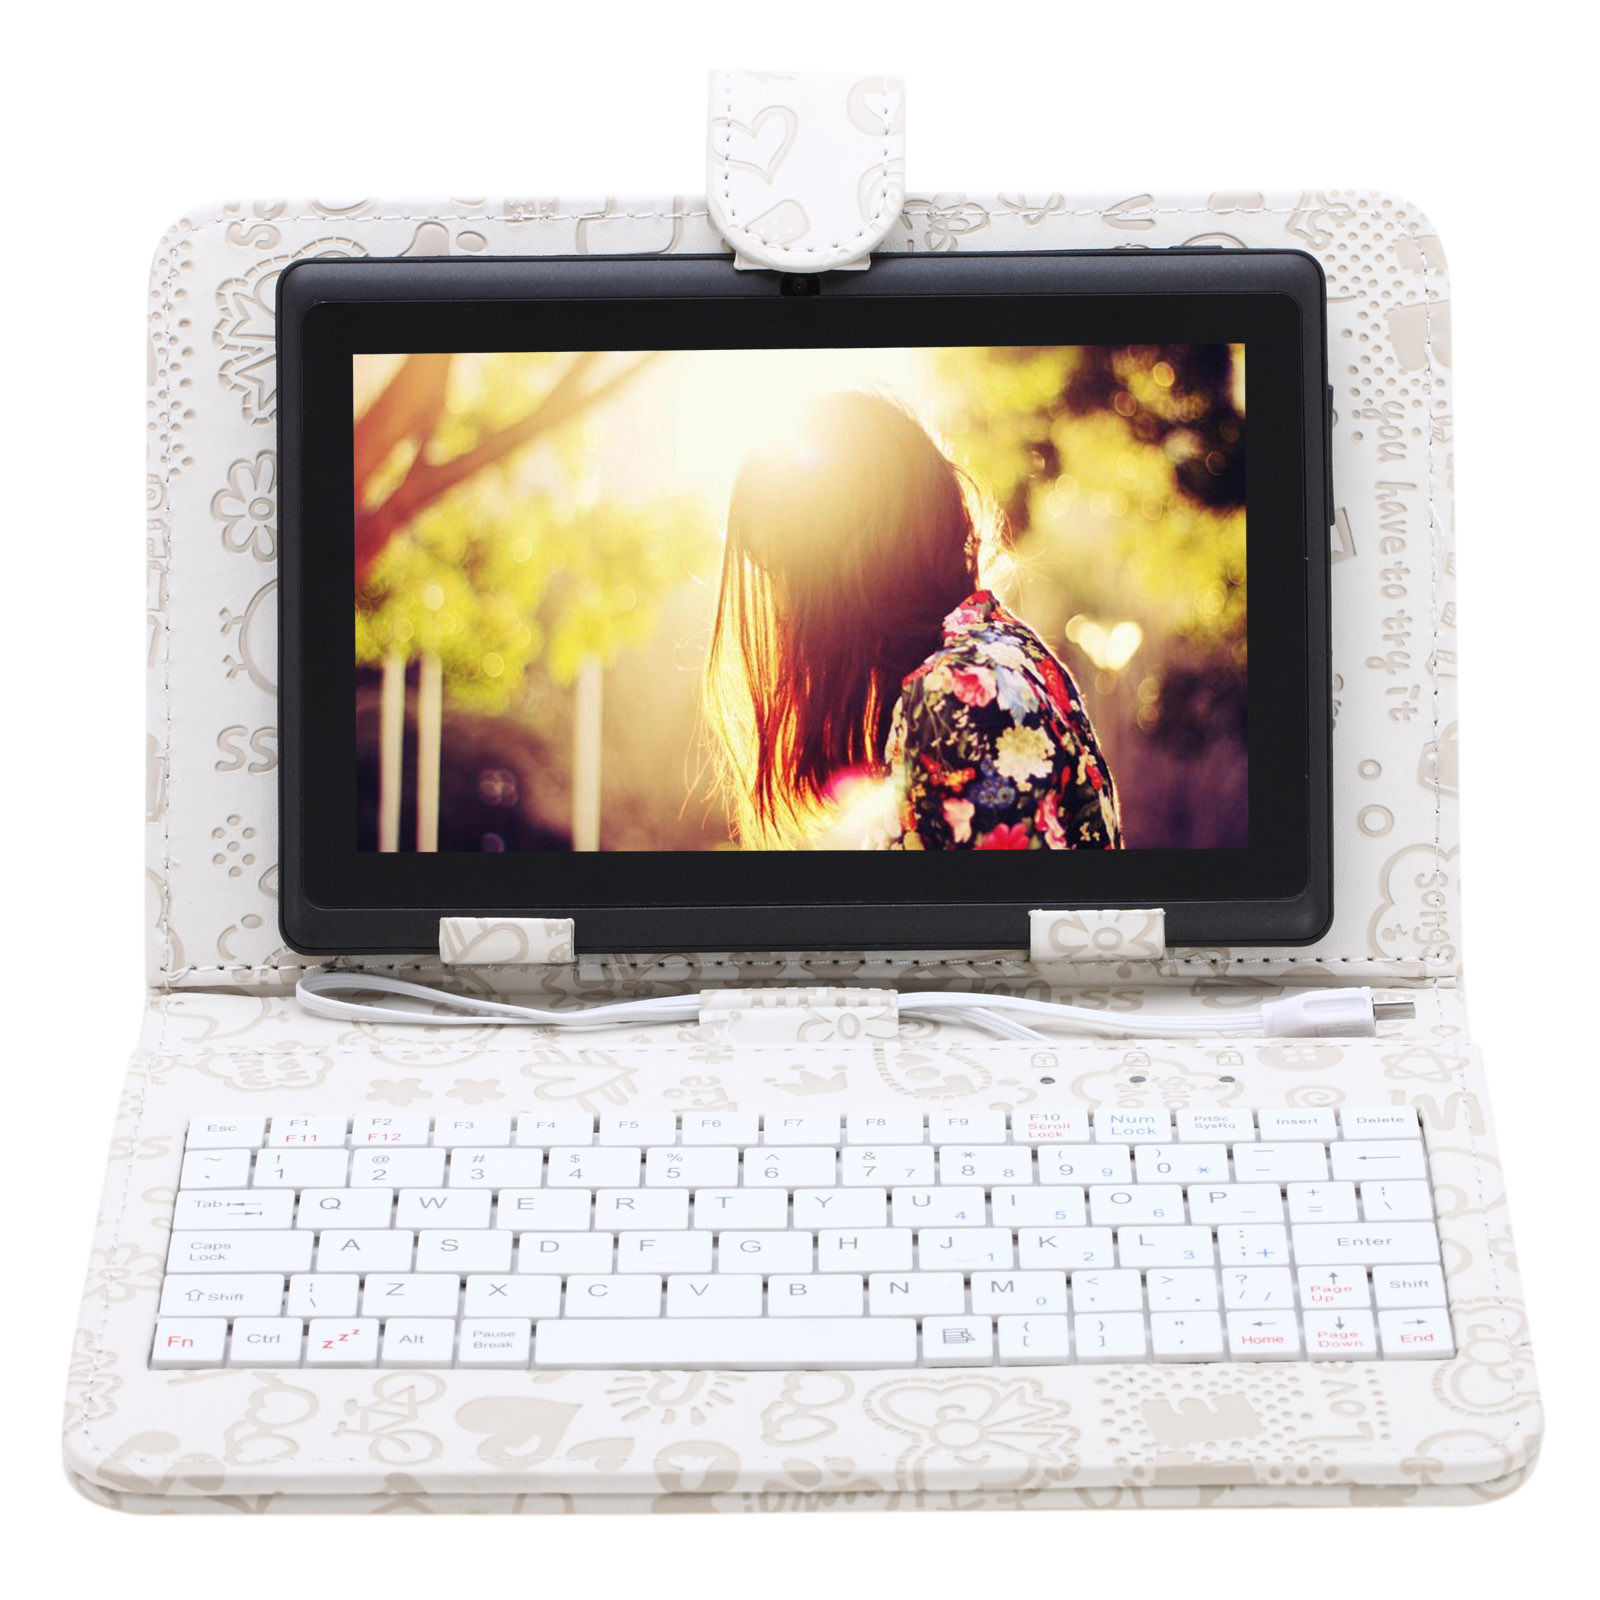 "Irulu Black 7""Inch Google Android 8GB Tablet PC, Quad Cor..."